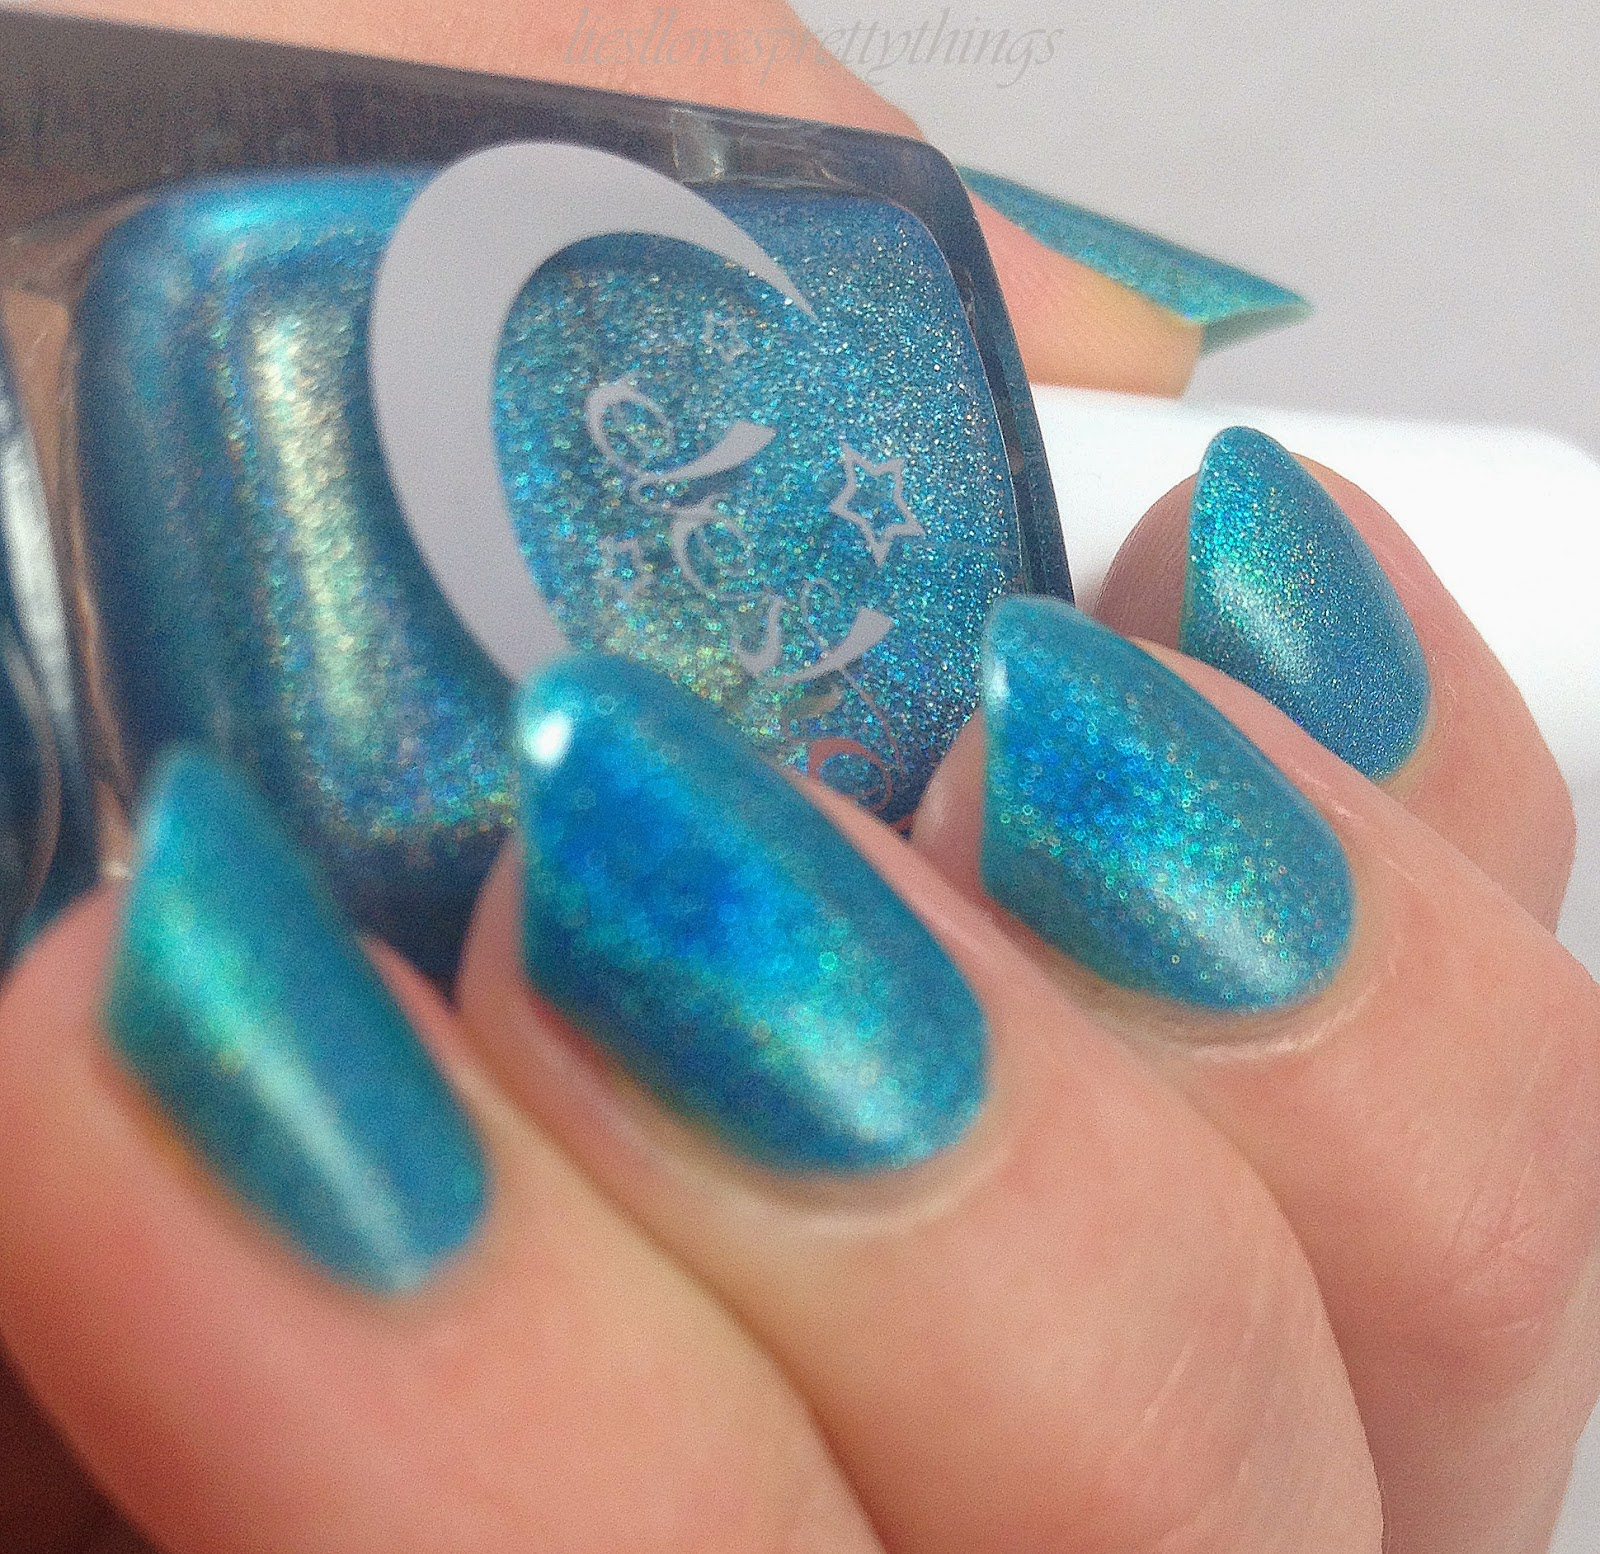 Celestial Cosmetics Inception-- The Electric You collection, Summer 2014